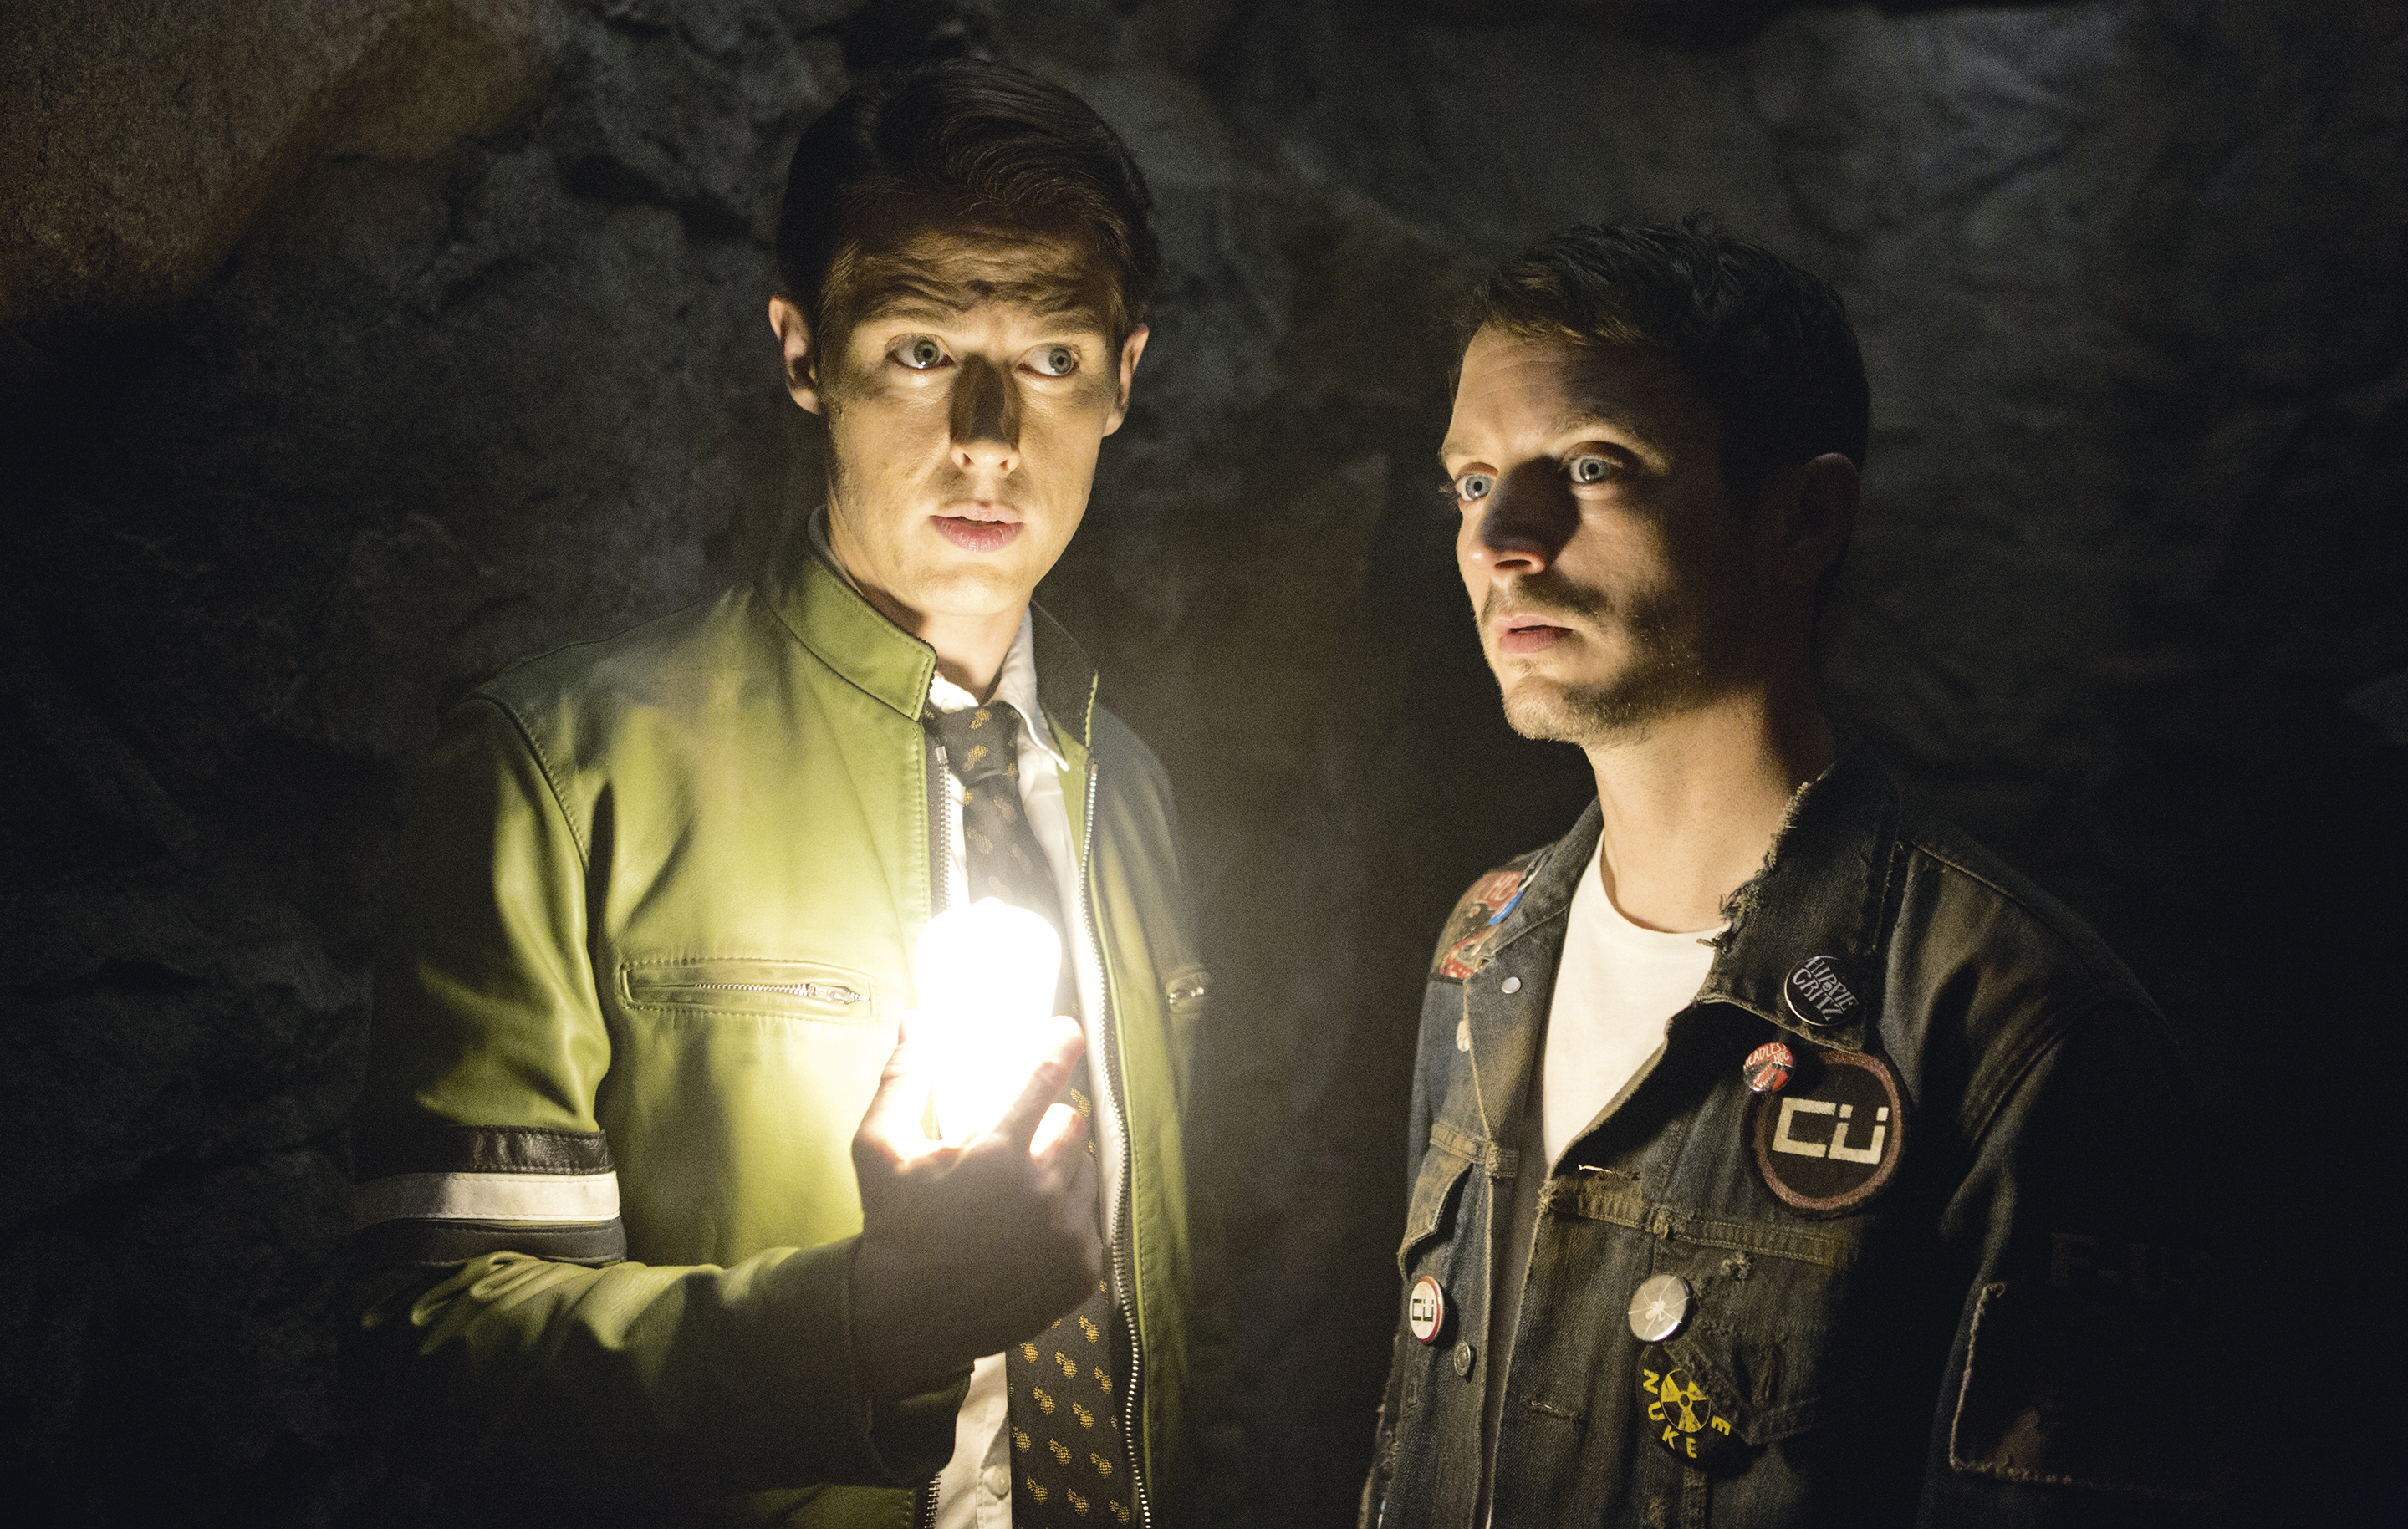 This goofy US show, based on Douglas Adams' novels, features rising British star Samuel Barnett (The History Boys) as Dirk Gently